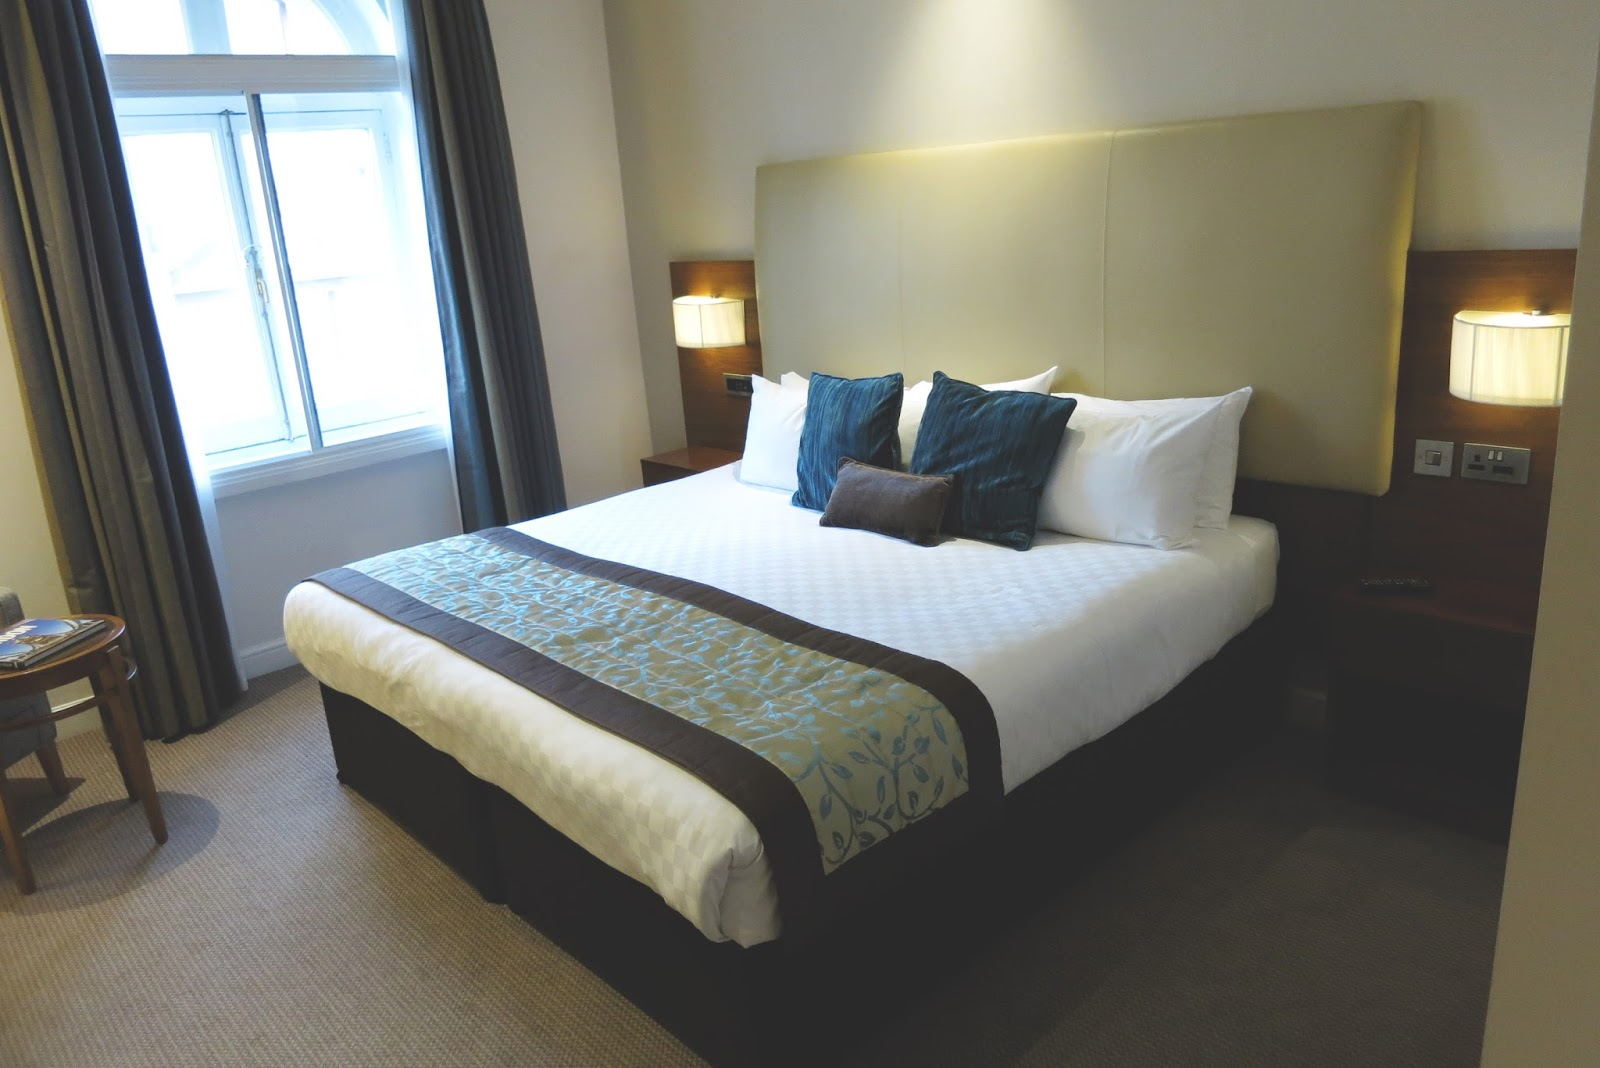 every hotel piccadilly, london hotel, central london hotel, west end london hotel